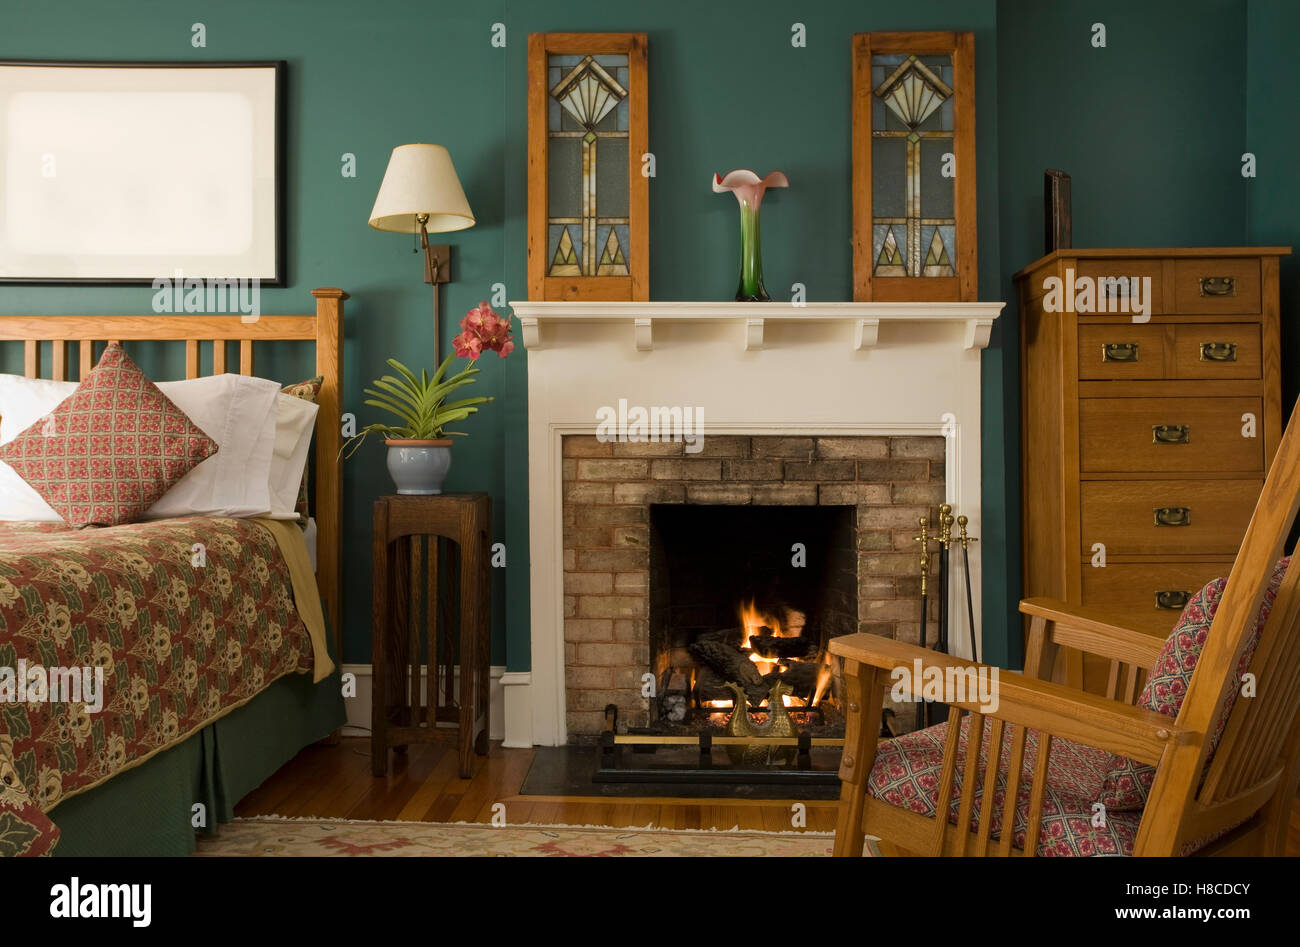 Cheminees Salas Fireplace In Bedroom Photos Fireplace In Bedroom Images Alamy